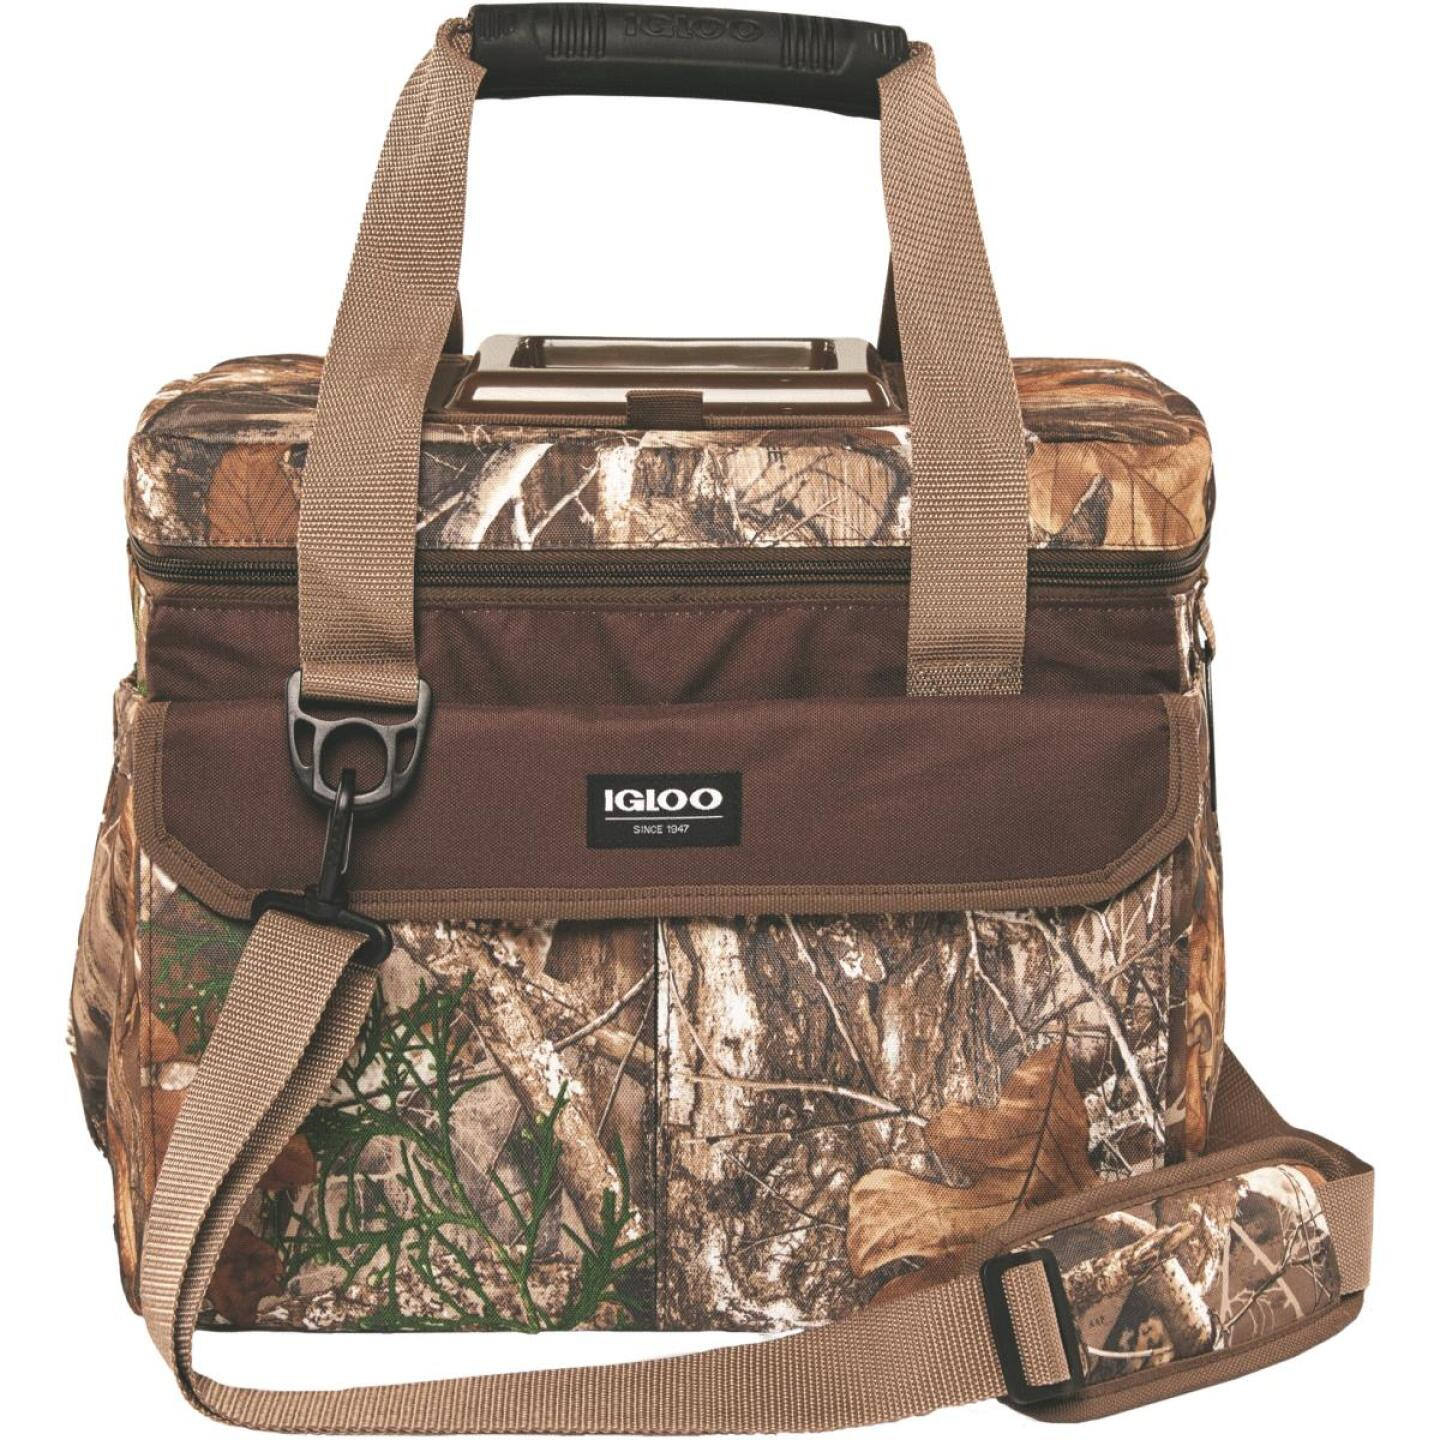 Igloo RealTree MaxCold Outdoorsman 30-Can Soft-Side Cooler, Camouflage Image 1